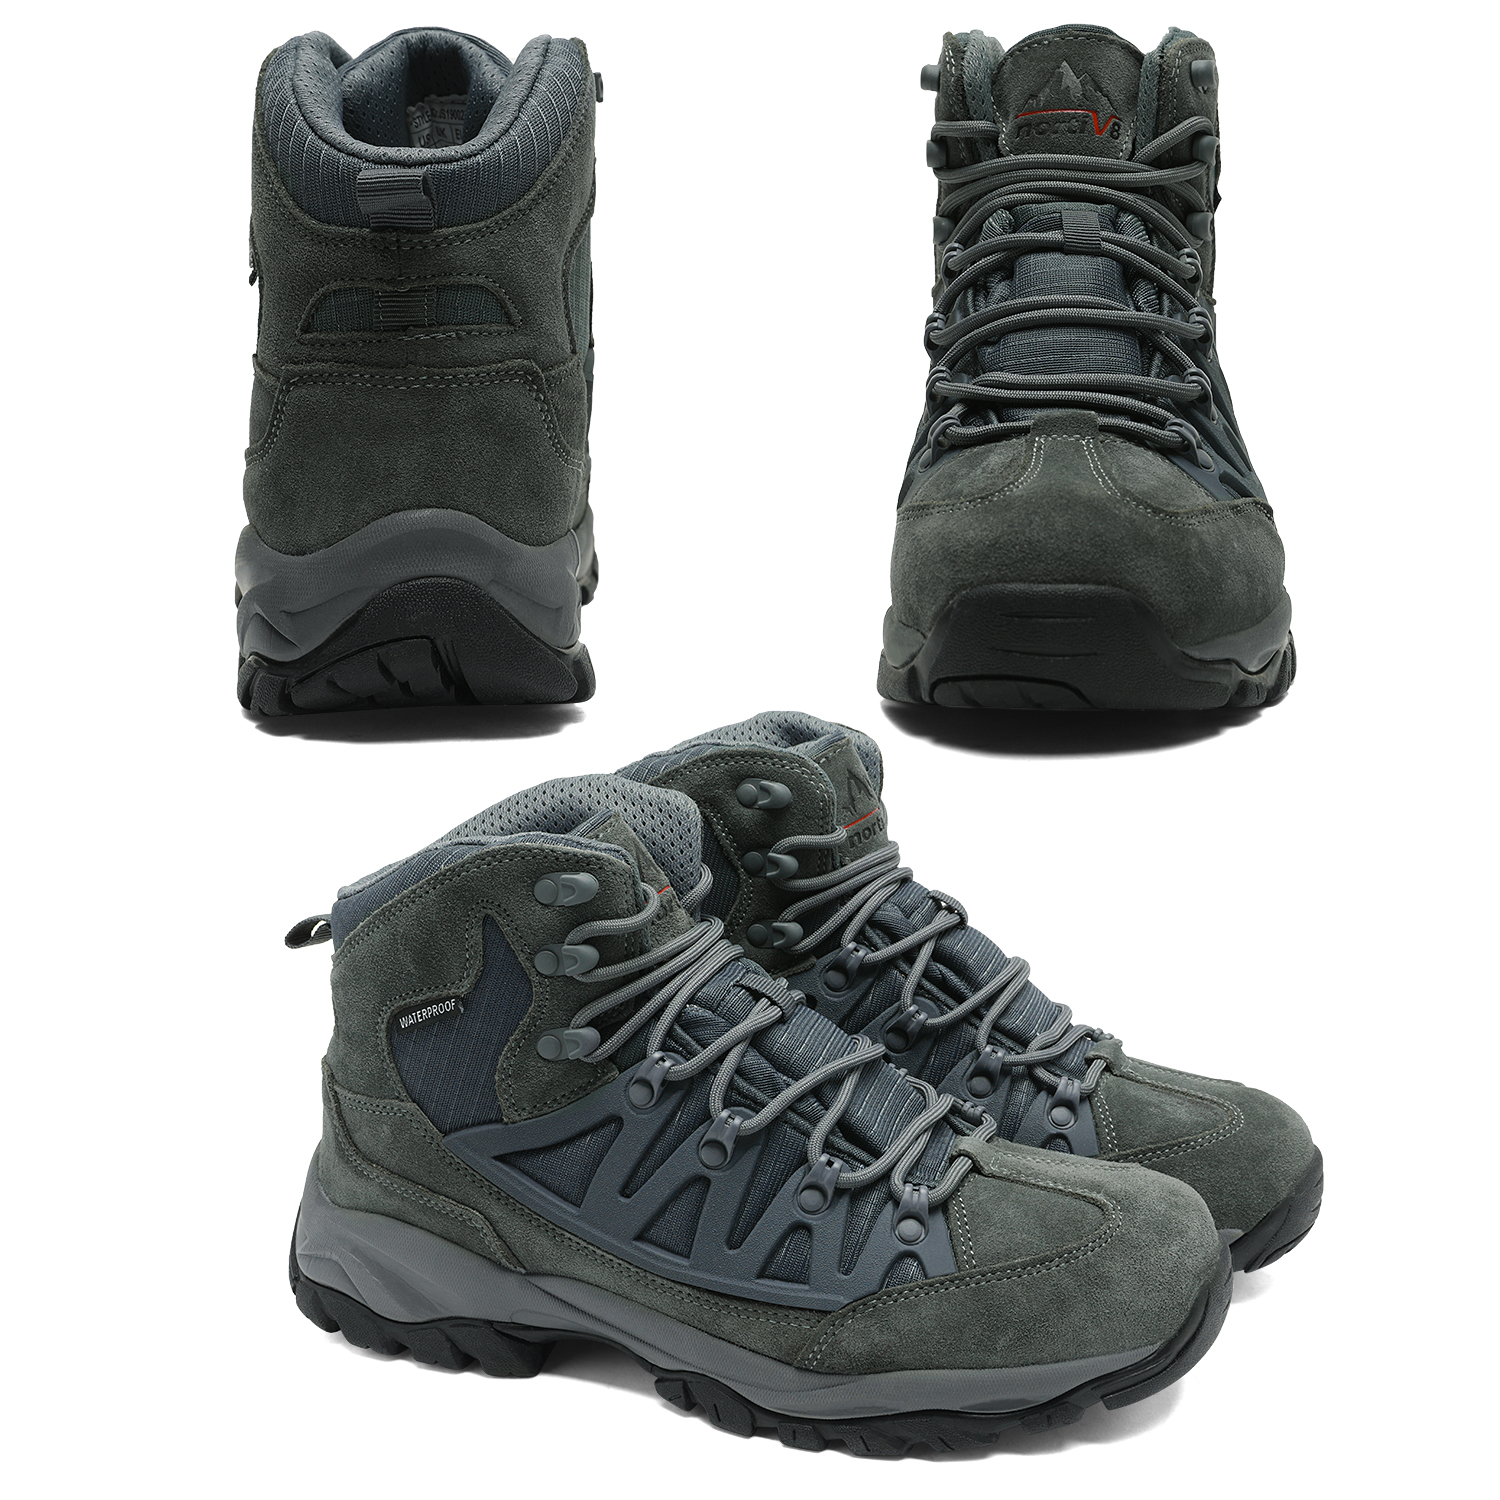 NORTIV-8-Men-039-s-Ankle-Waterproof-Hiking-Boots-Lightweight-Backpacking-Work-Shoes thumbnail 51